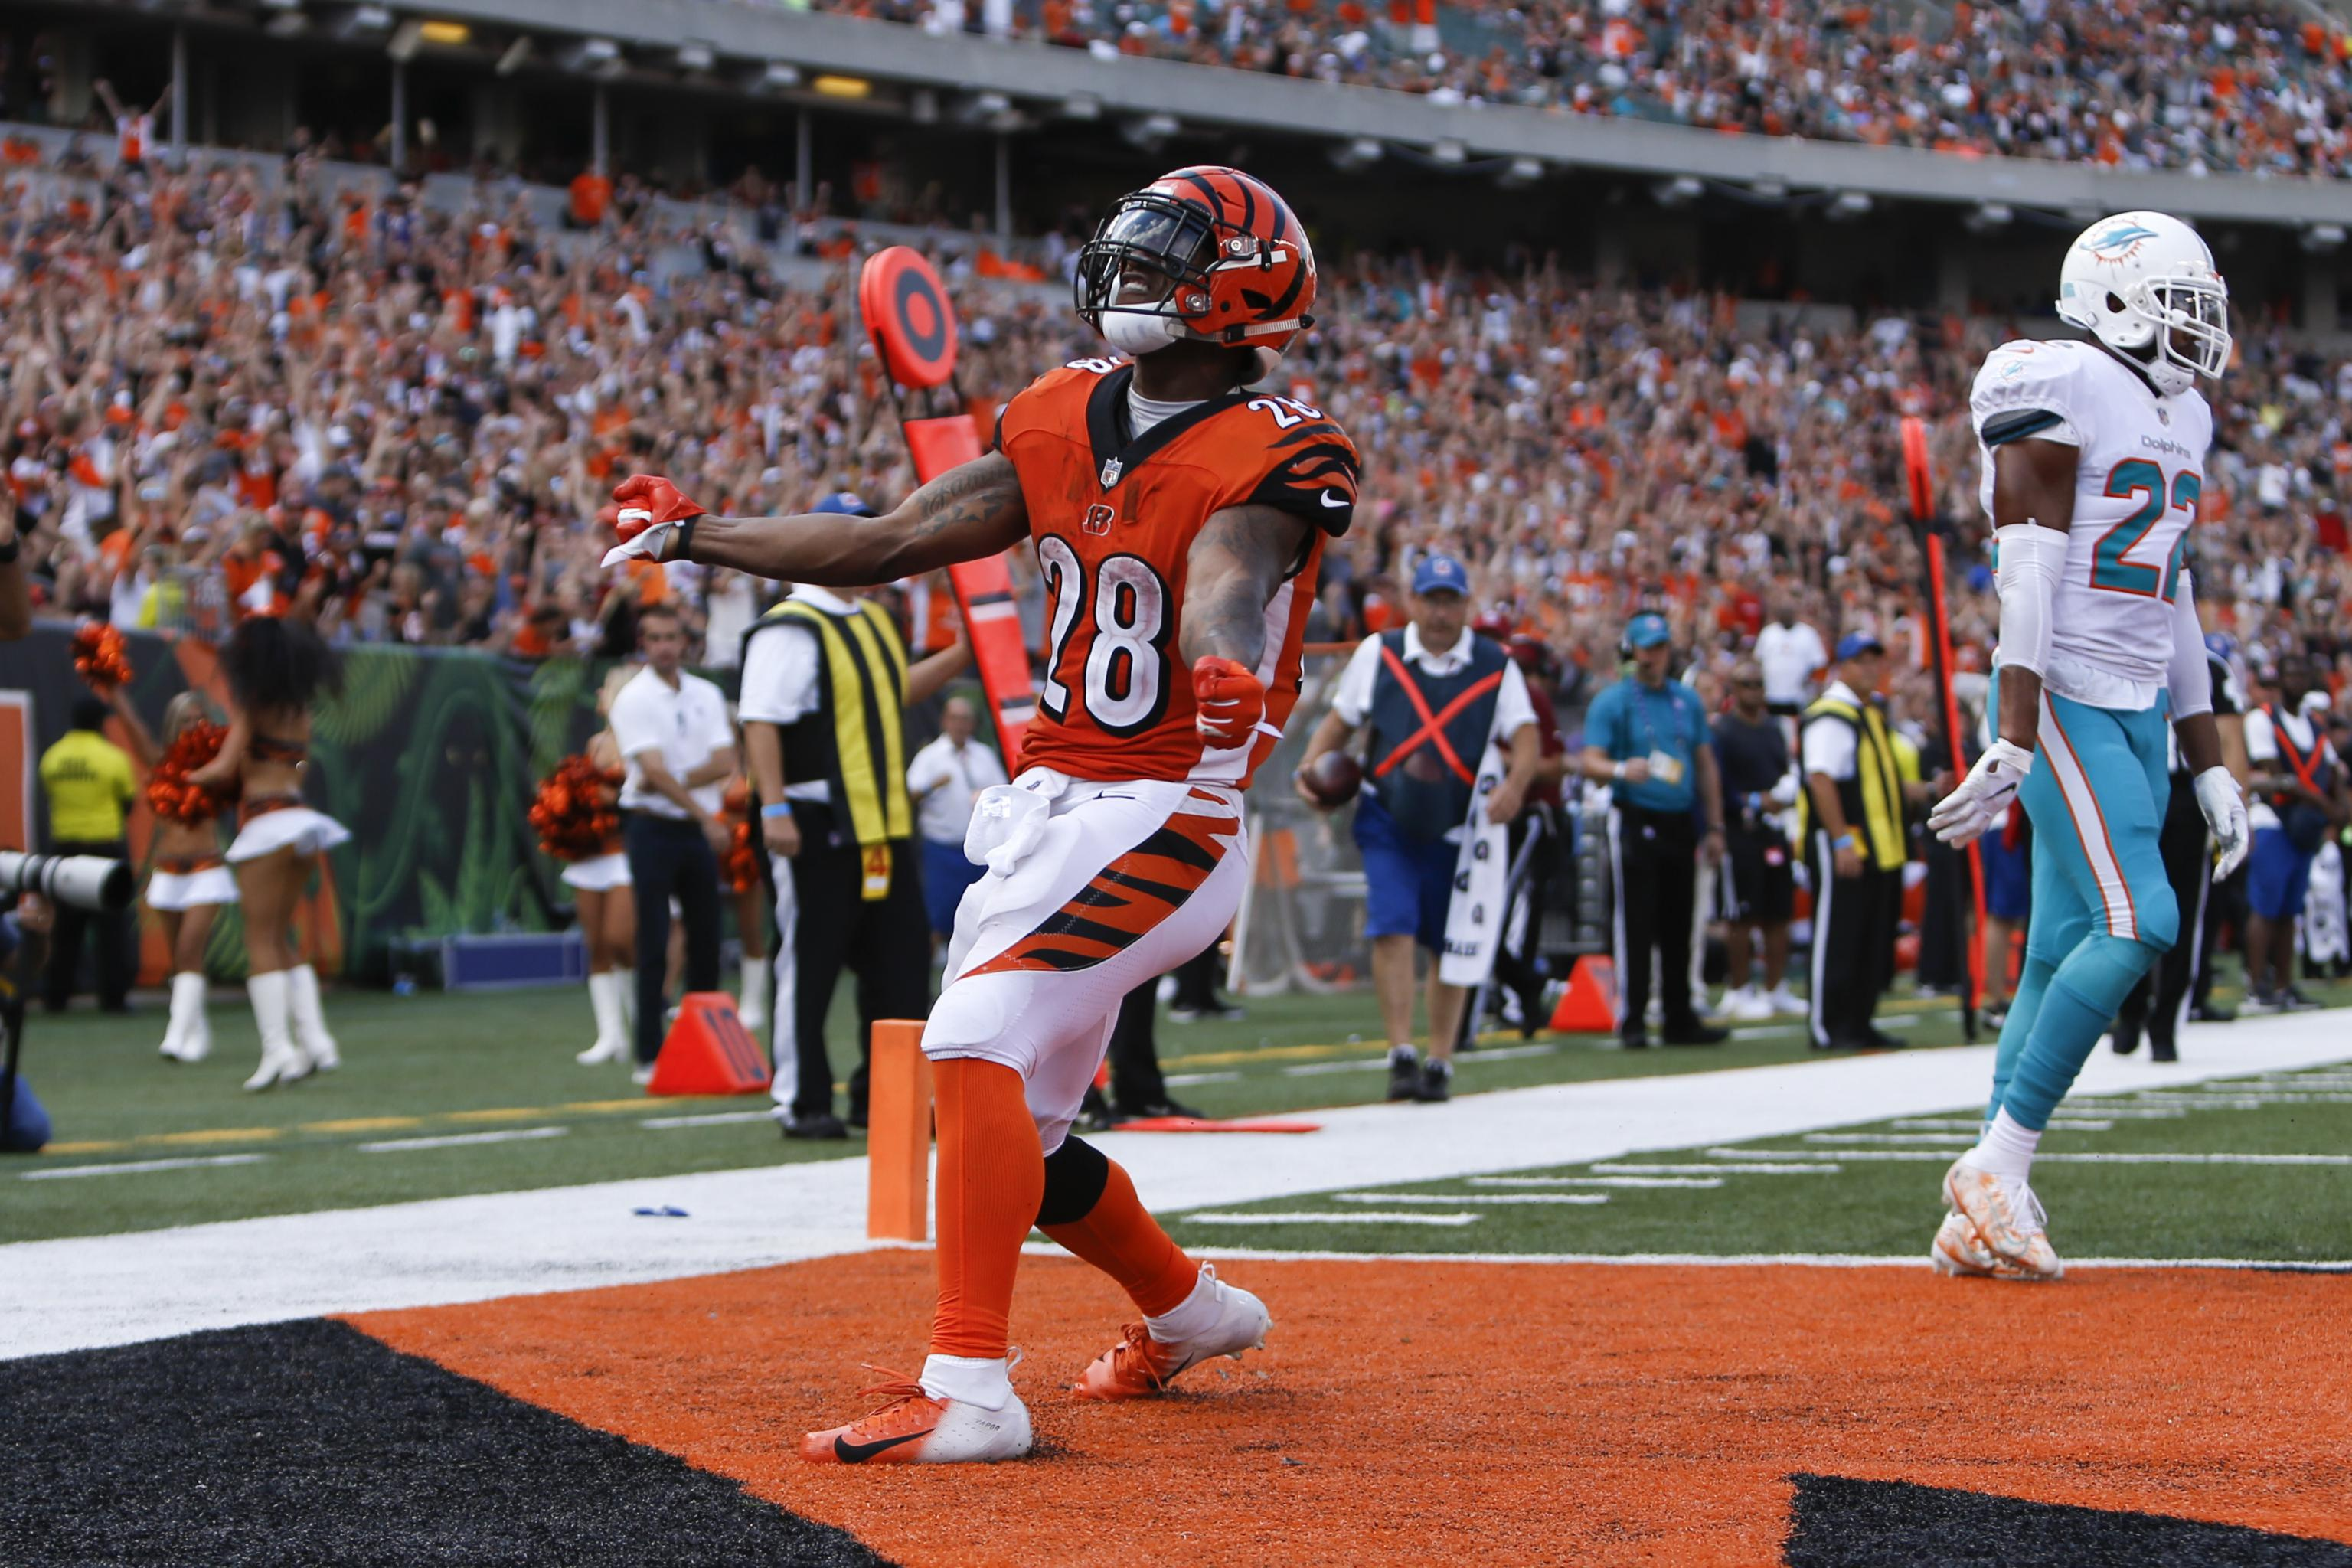 f000c3c8 NFL Power Rankings Week 6: Latest Outlook and 2018-19 Super Bowl ...